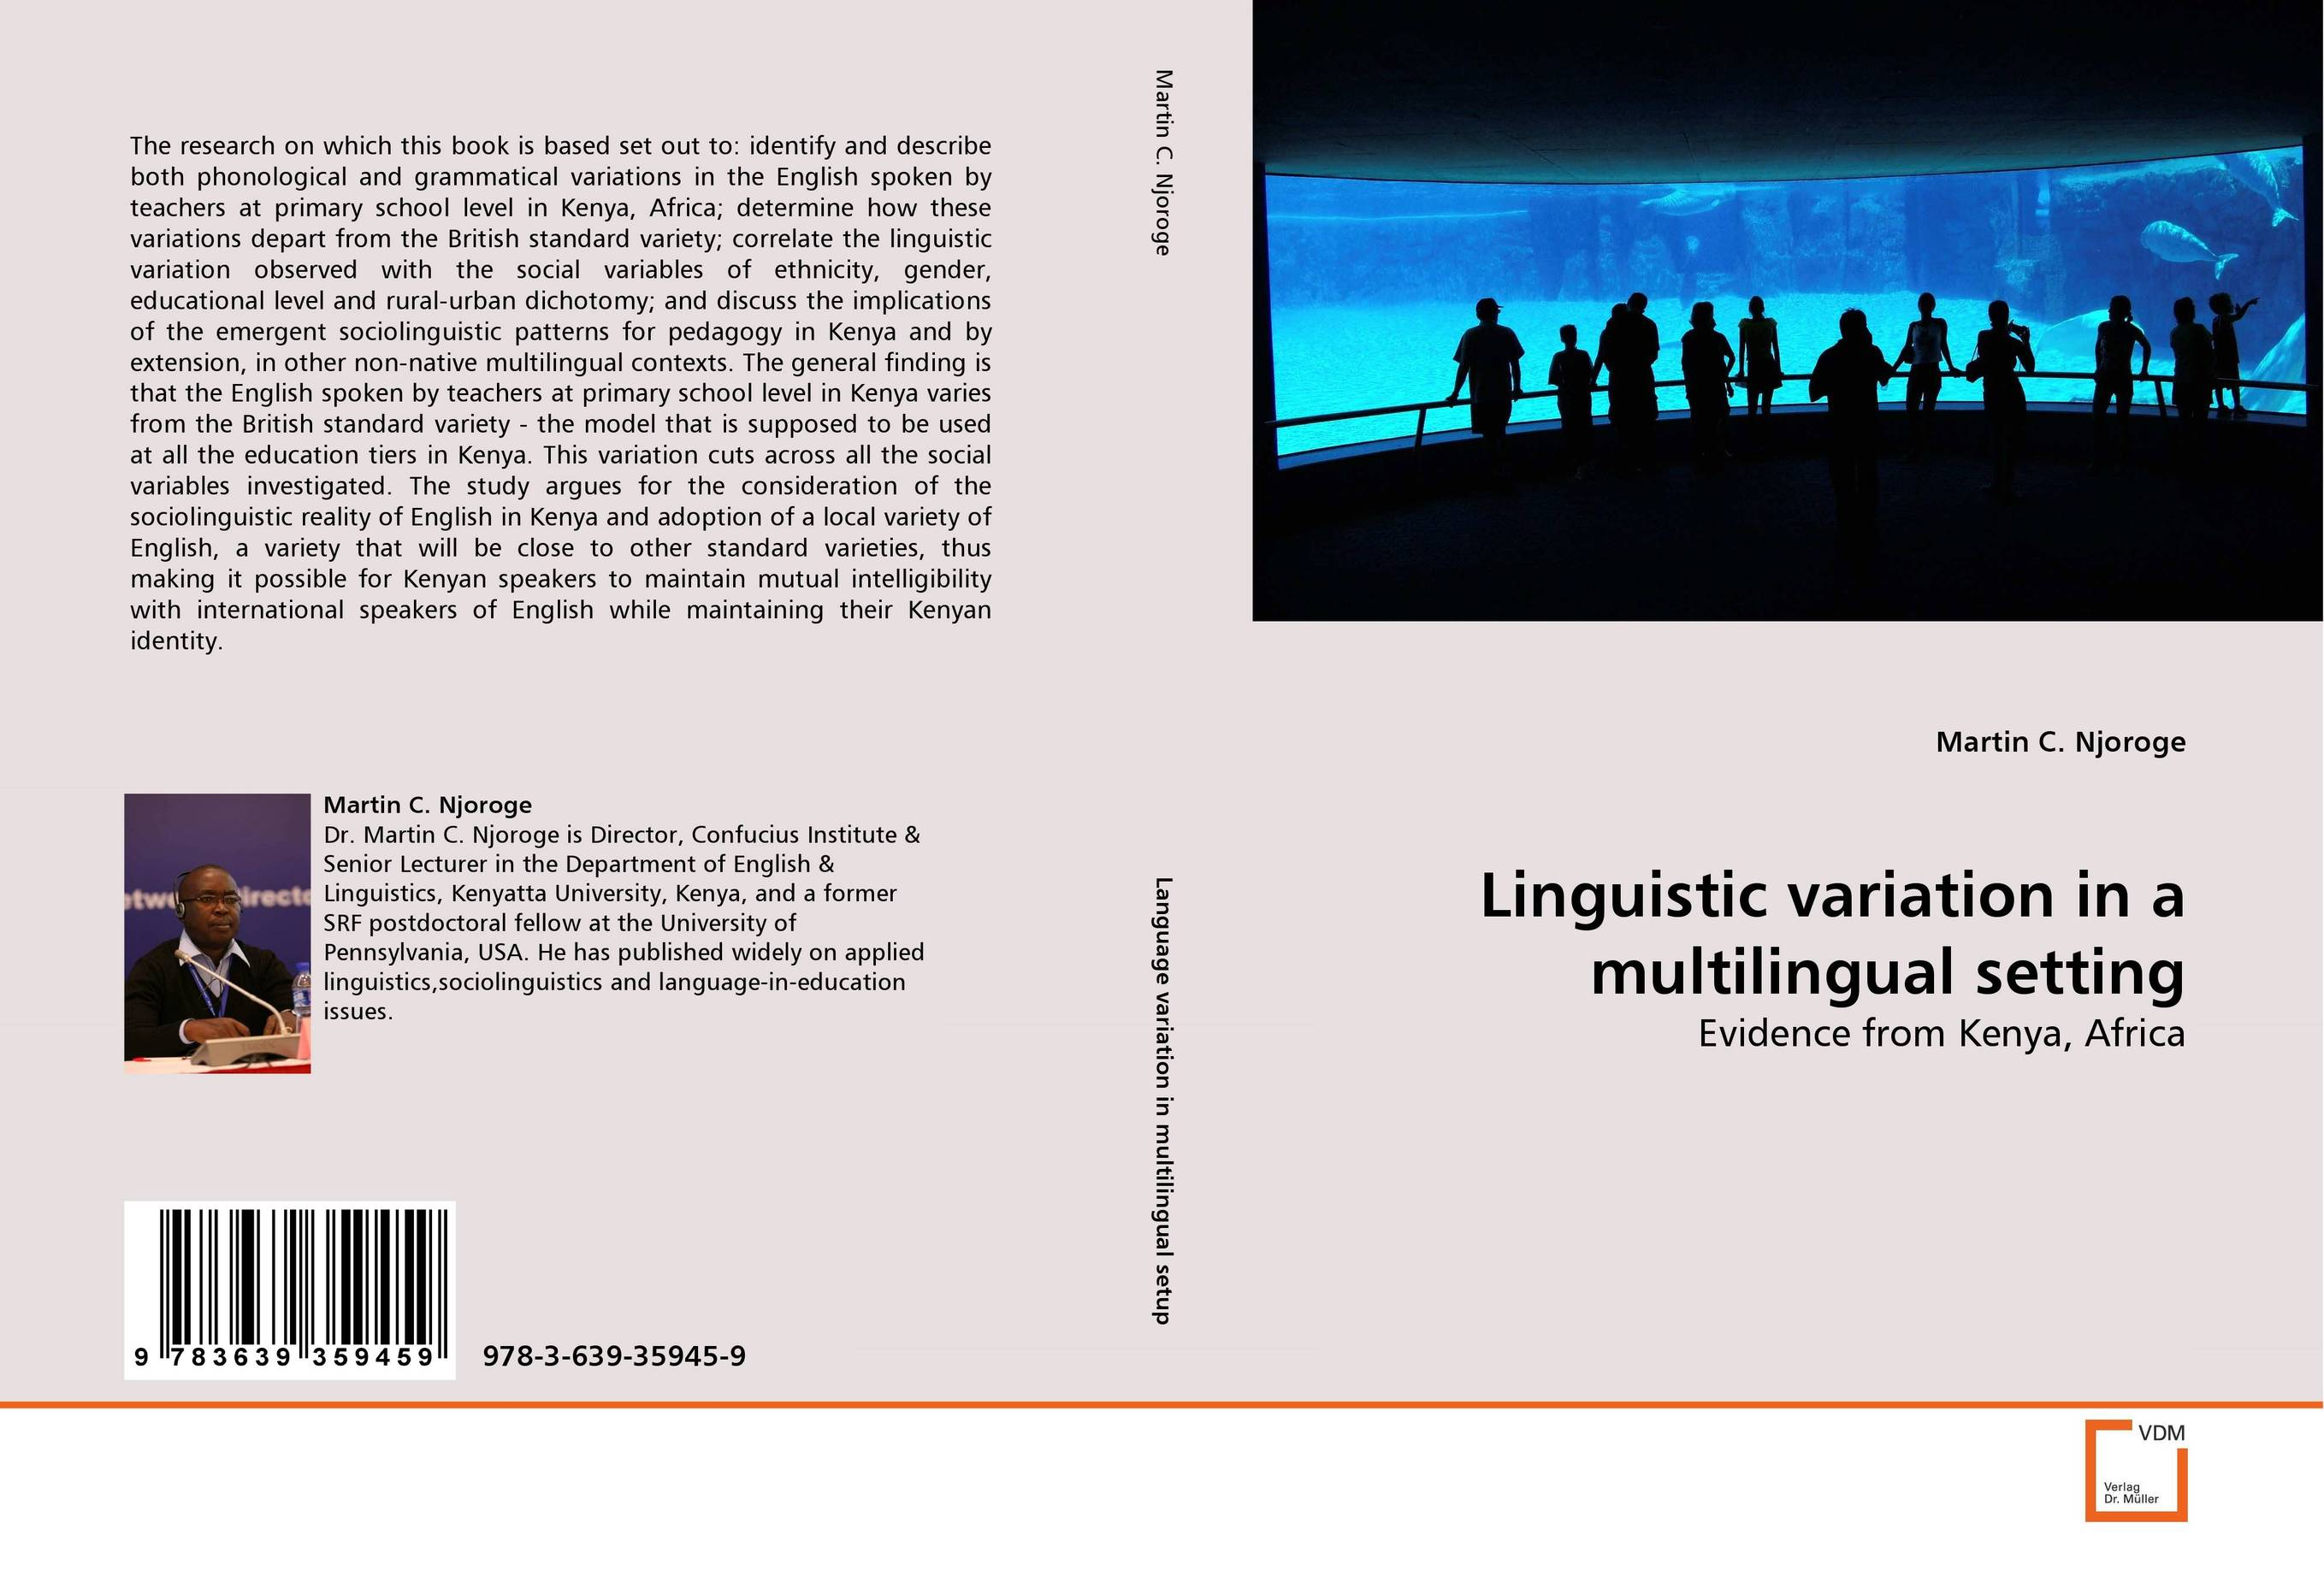 Linguistic variation in a multilingual setting linguistic variation in a multilingual setting